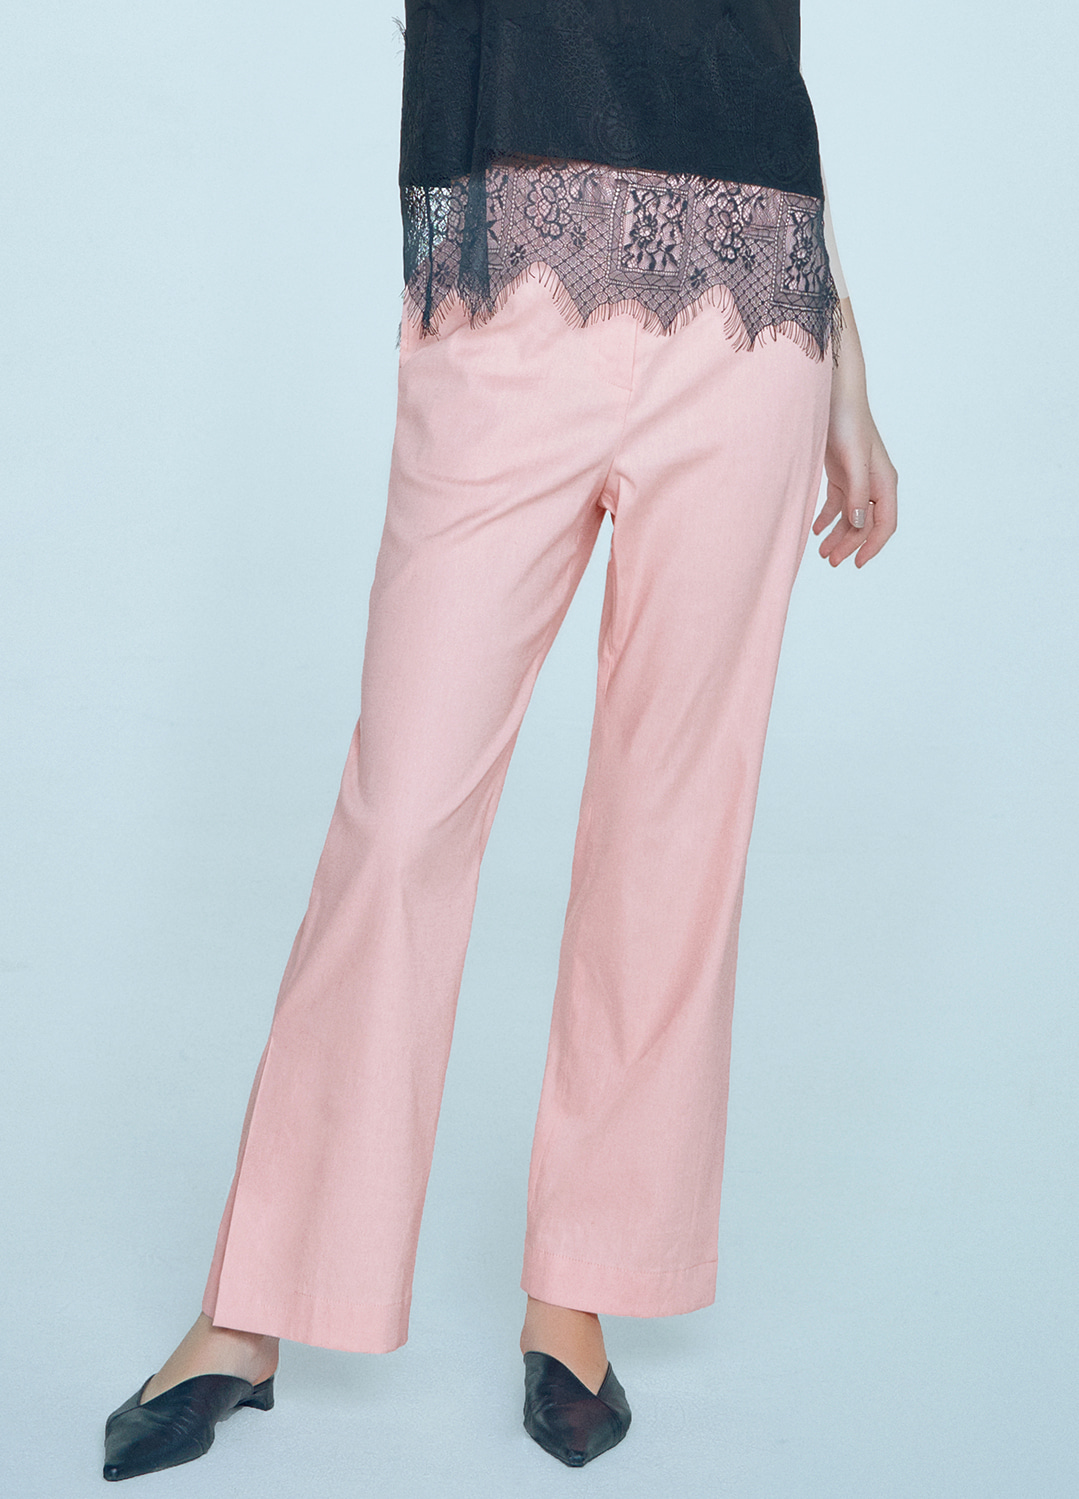 high waist wide pants Pink 40%